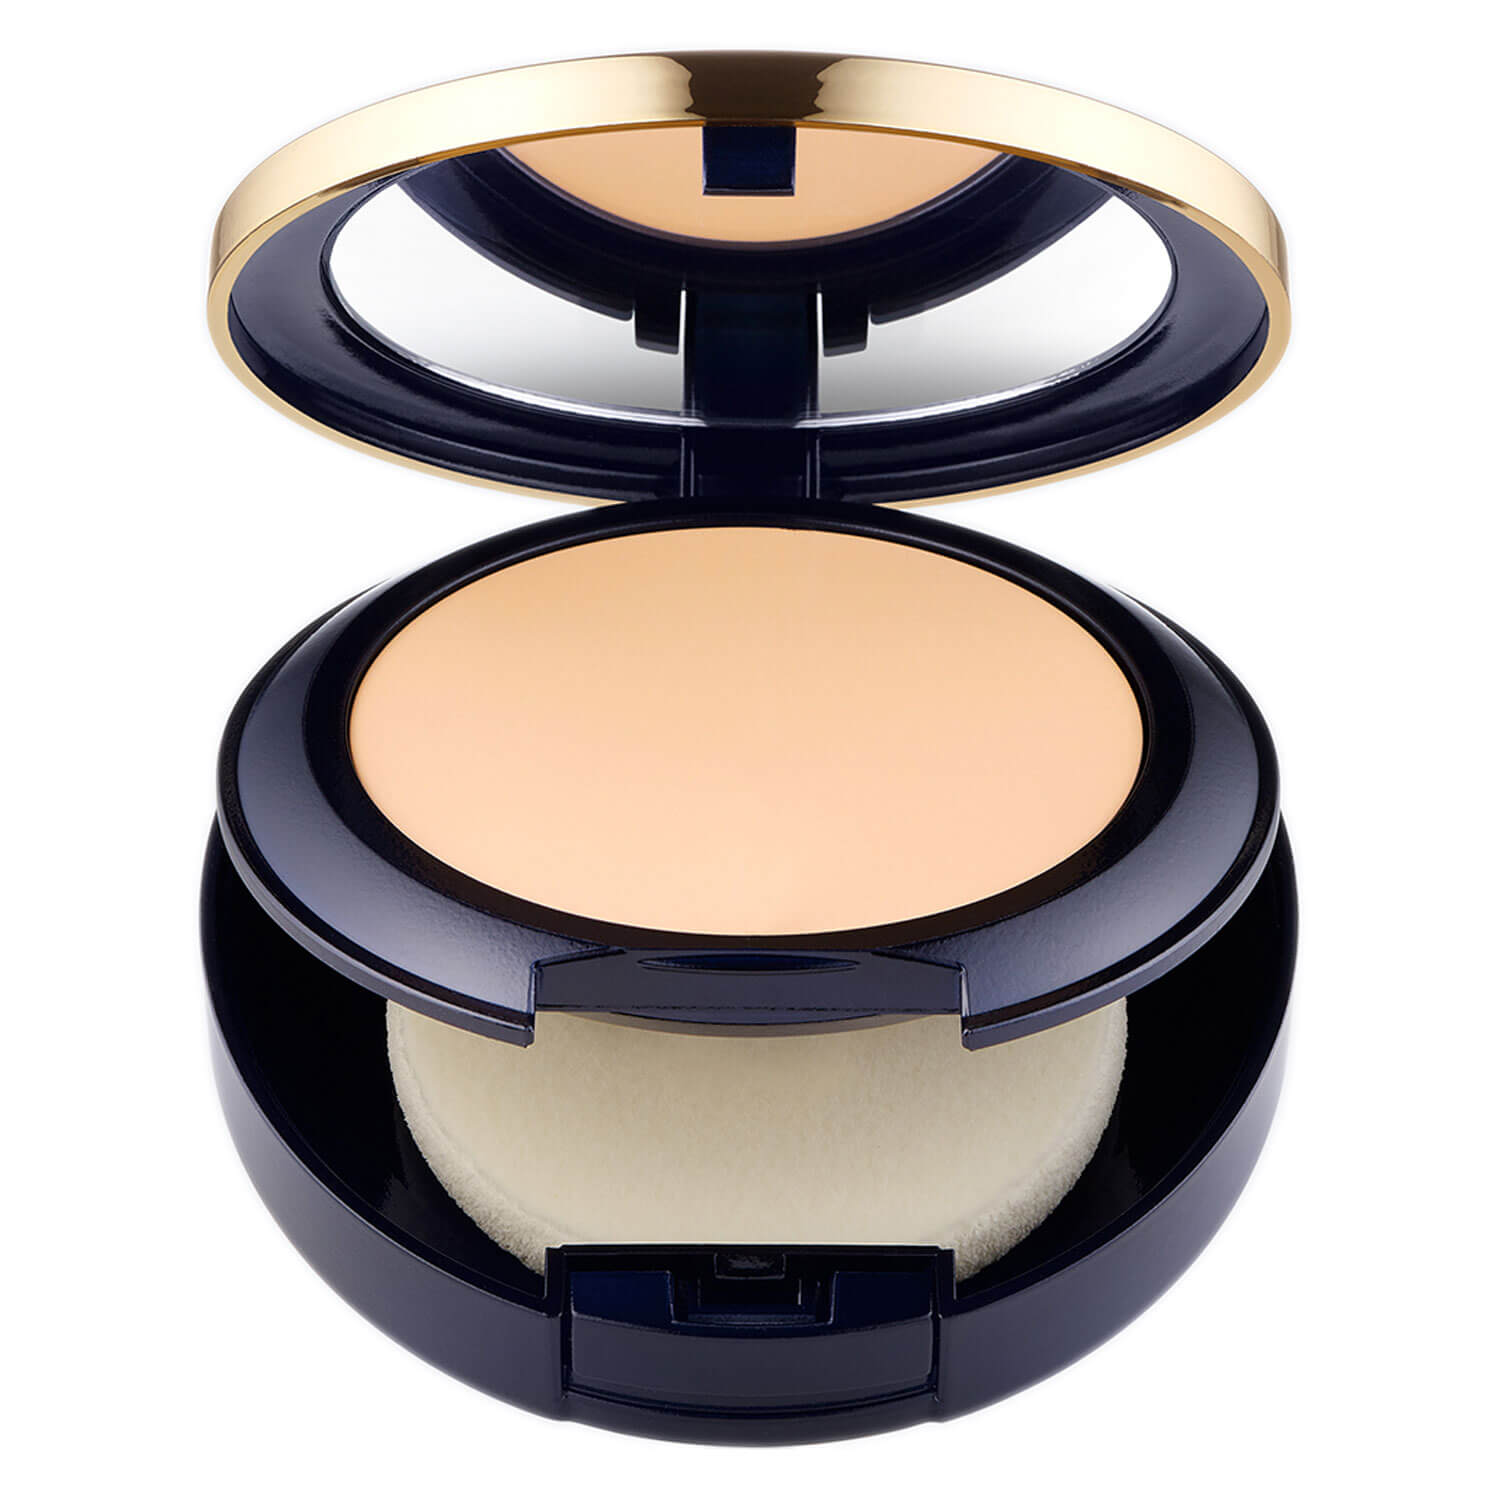 Double Wear - Stay-in Place Matte Powder Foundation Pale Almond 2C2